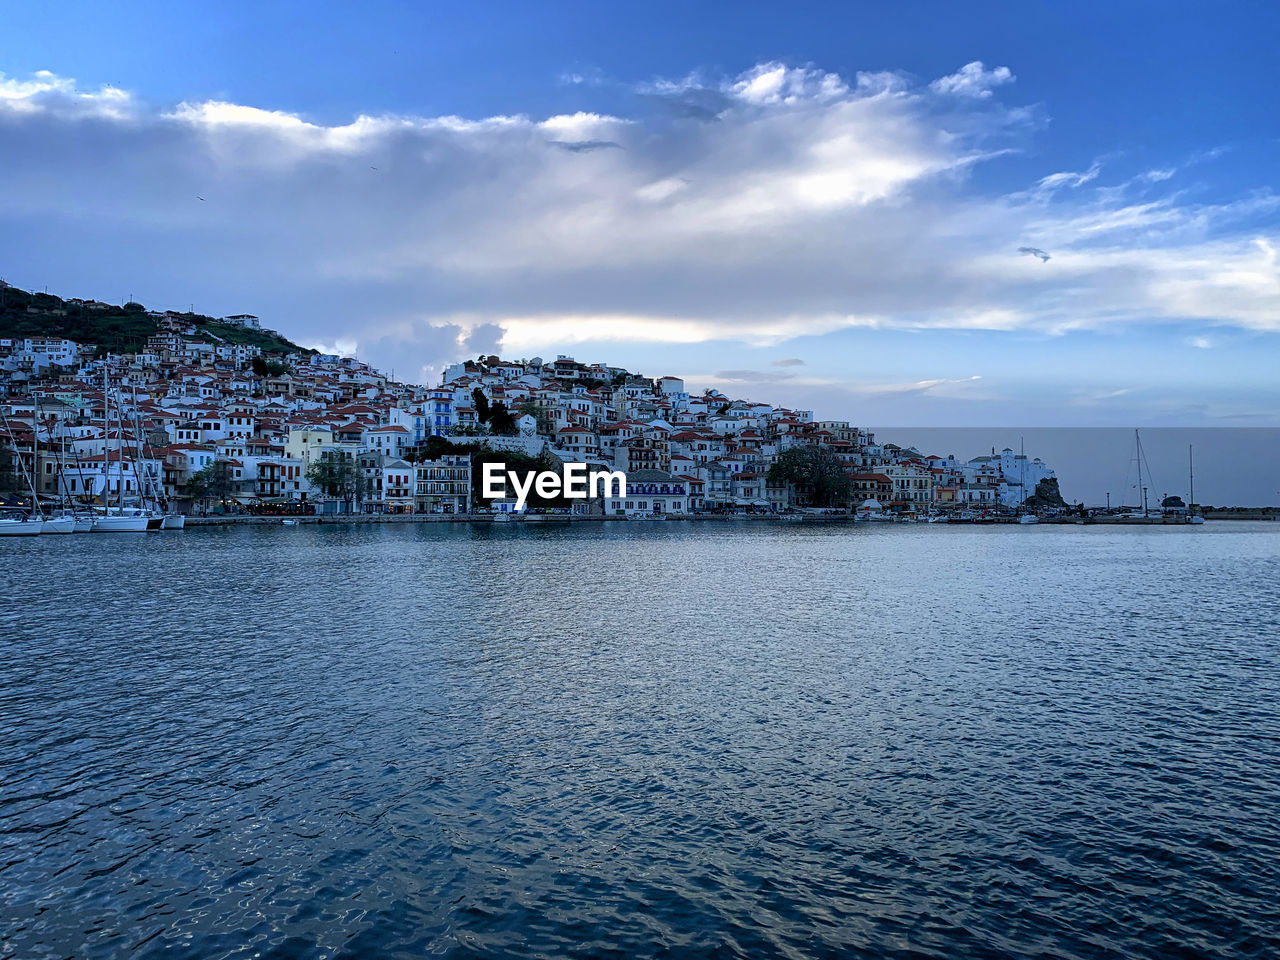 water, architecture, built structure, building exterior, sky, waterfront, city, cloud - sky, building, sea, no people, nature, beauty in nature, scenics - nature, day, residential district, town, outdoors, rippled, townscape